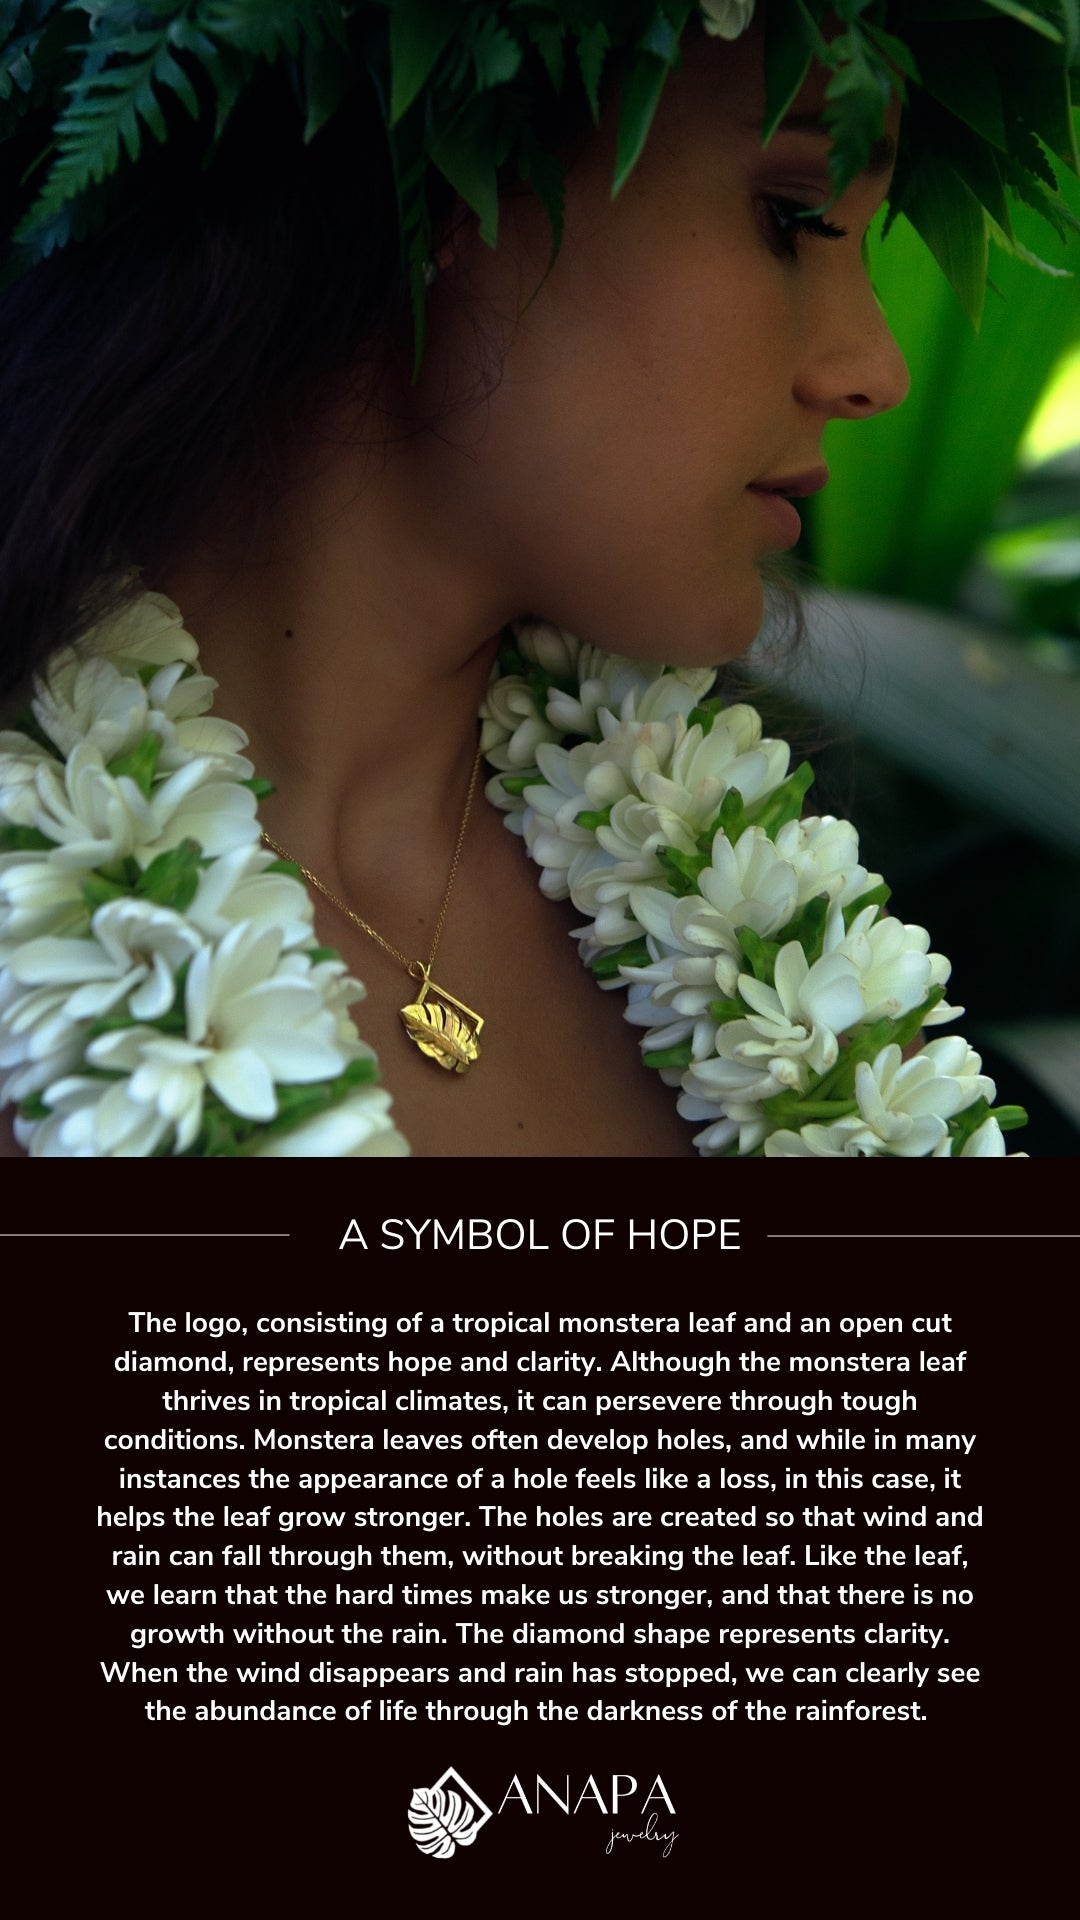 A symbol of Hope. The logo, consisting of a tropical monstera leaf and an open cut diamond, represents hope and clarity. Although the monstera leaf thrives in tropical climates, it can persevere through tough conditions. Monstera leaves often develop holes, and while in many instances the appearance of a hole feels like a loss, in this case, it helps the leaf grow stronger. The holes are created so that wind and rain can fall through them, without breaking the leaf. Like the leaf, we learn that the hard times make us stronger, and that there is no growth without the rain. The diamond shape represents clarity. When the wind disappears and rain has stopped, we can clearly see the abundance of life through the darkness of the rainforest.